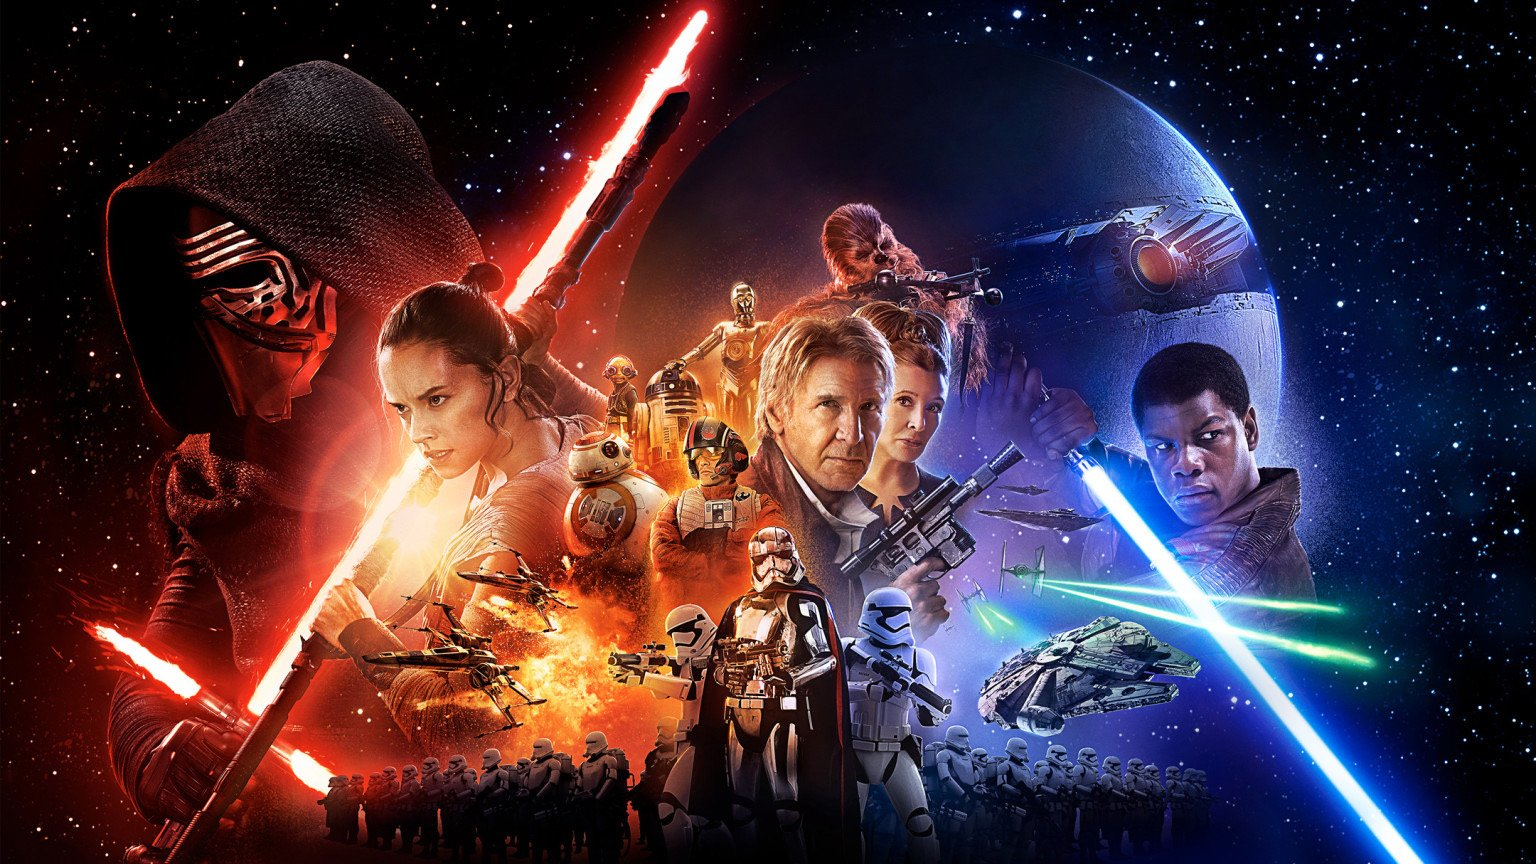 How To Watch Star Wars May The Force Be With You Expert Reviews